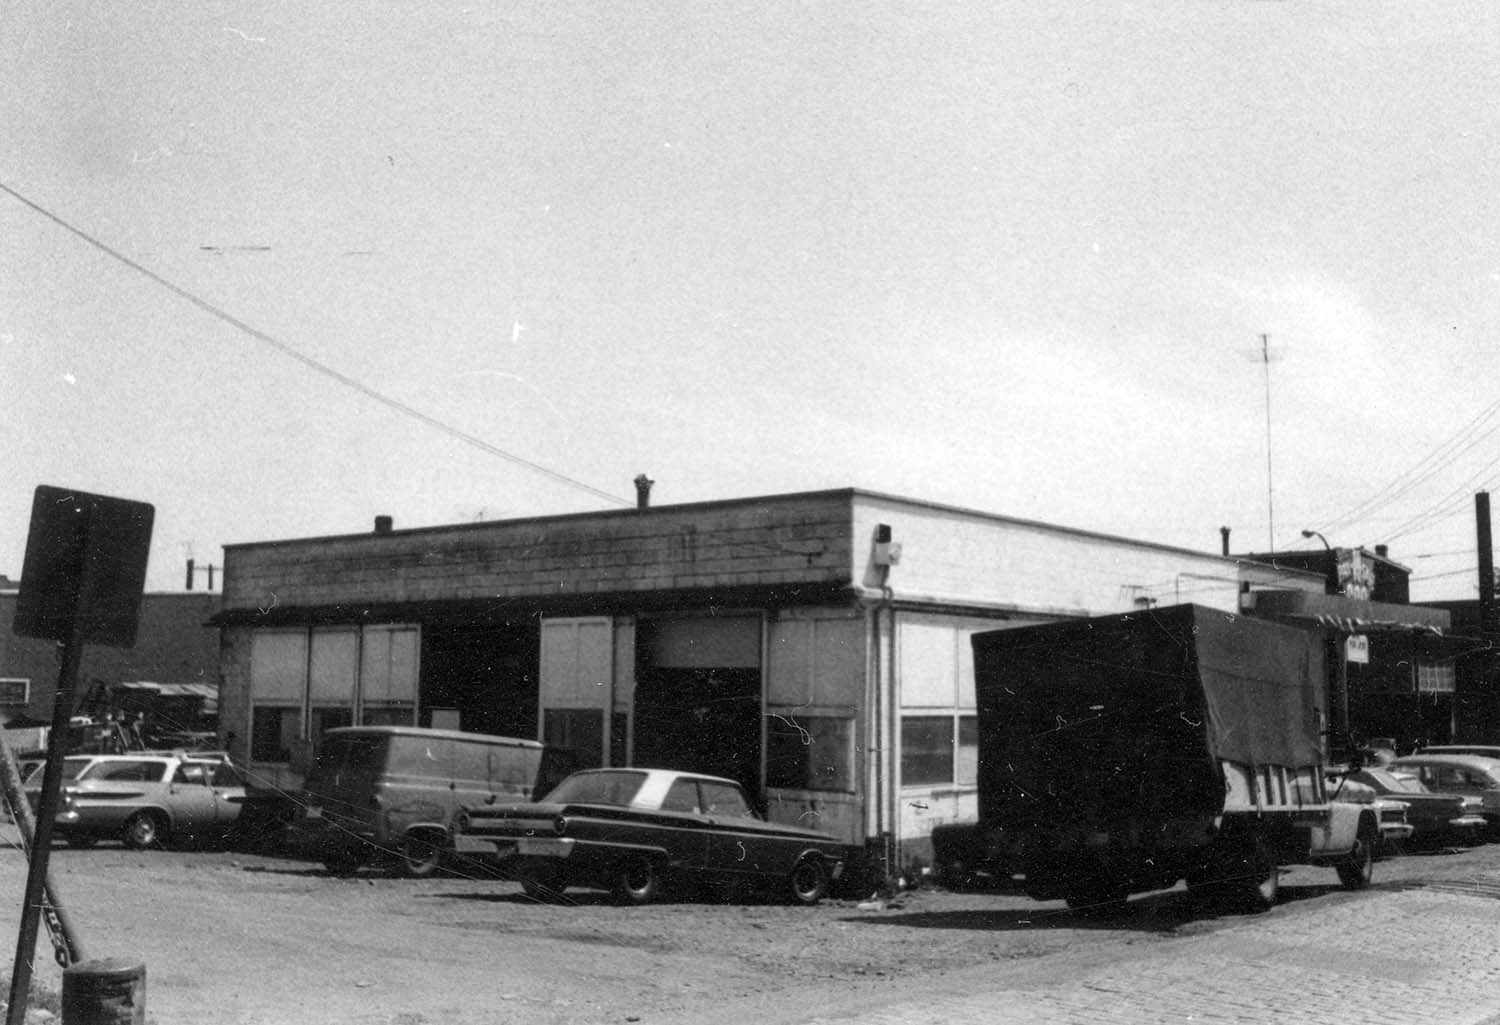 Rear and west side view of building [219 - 221 Prior Street], 1969. Reference code COV-S168-: CVA 203-54